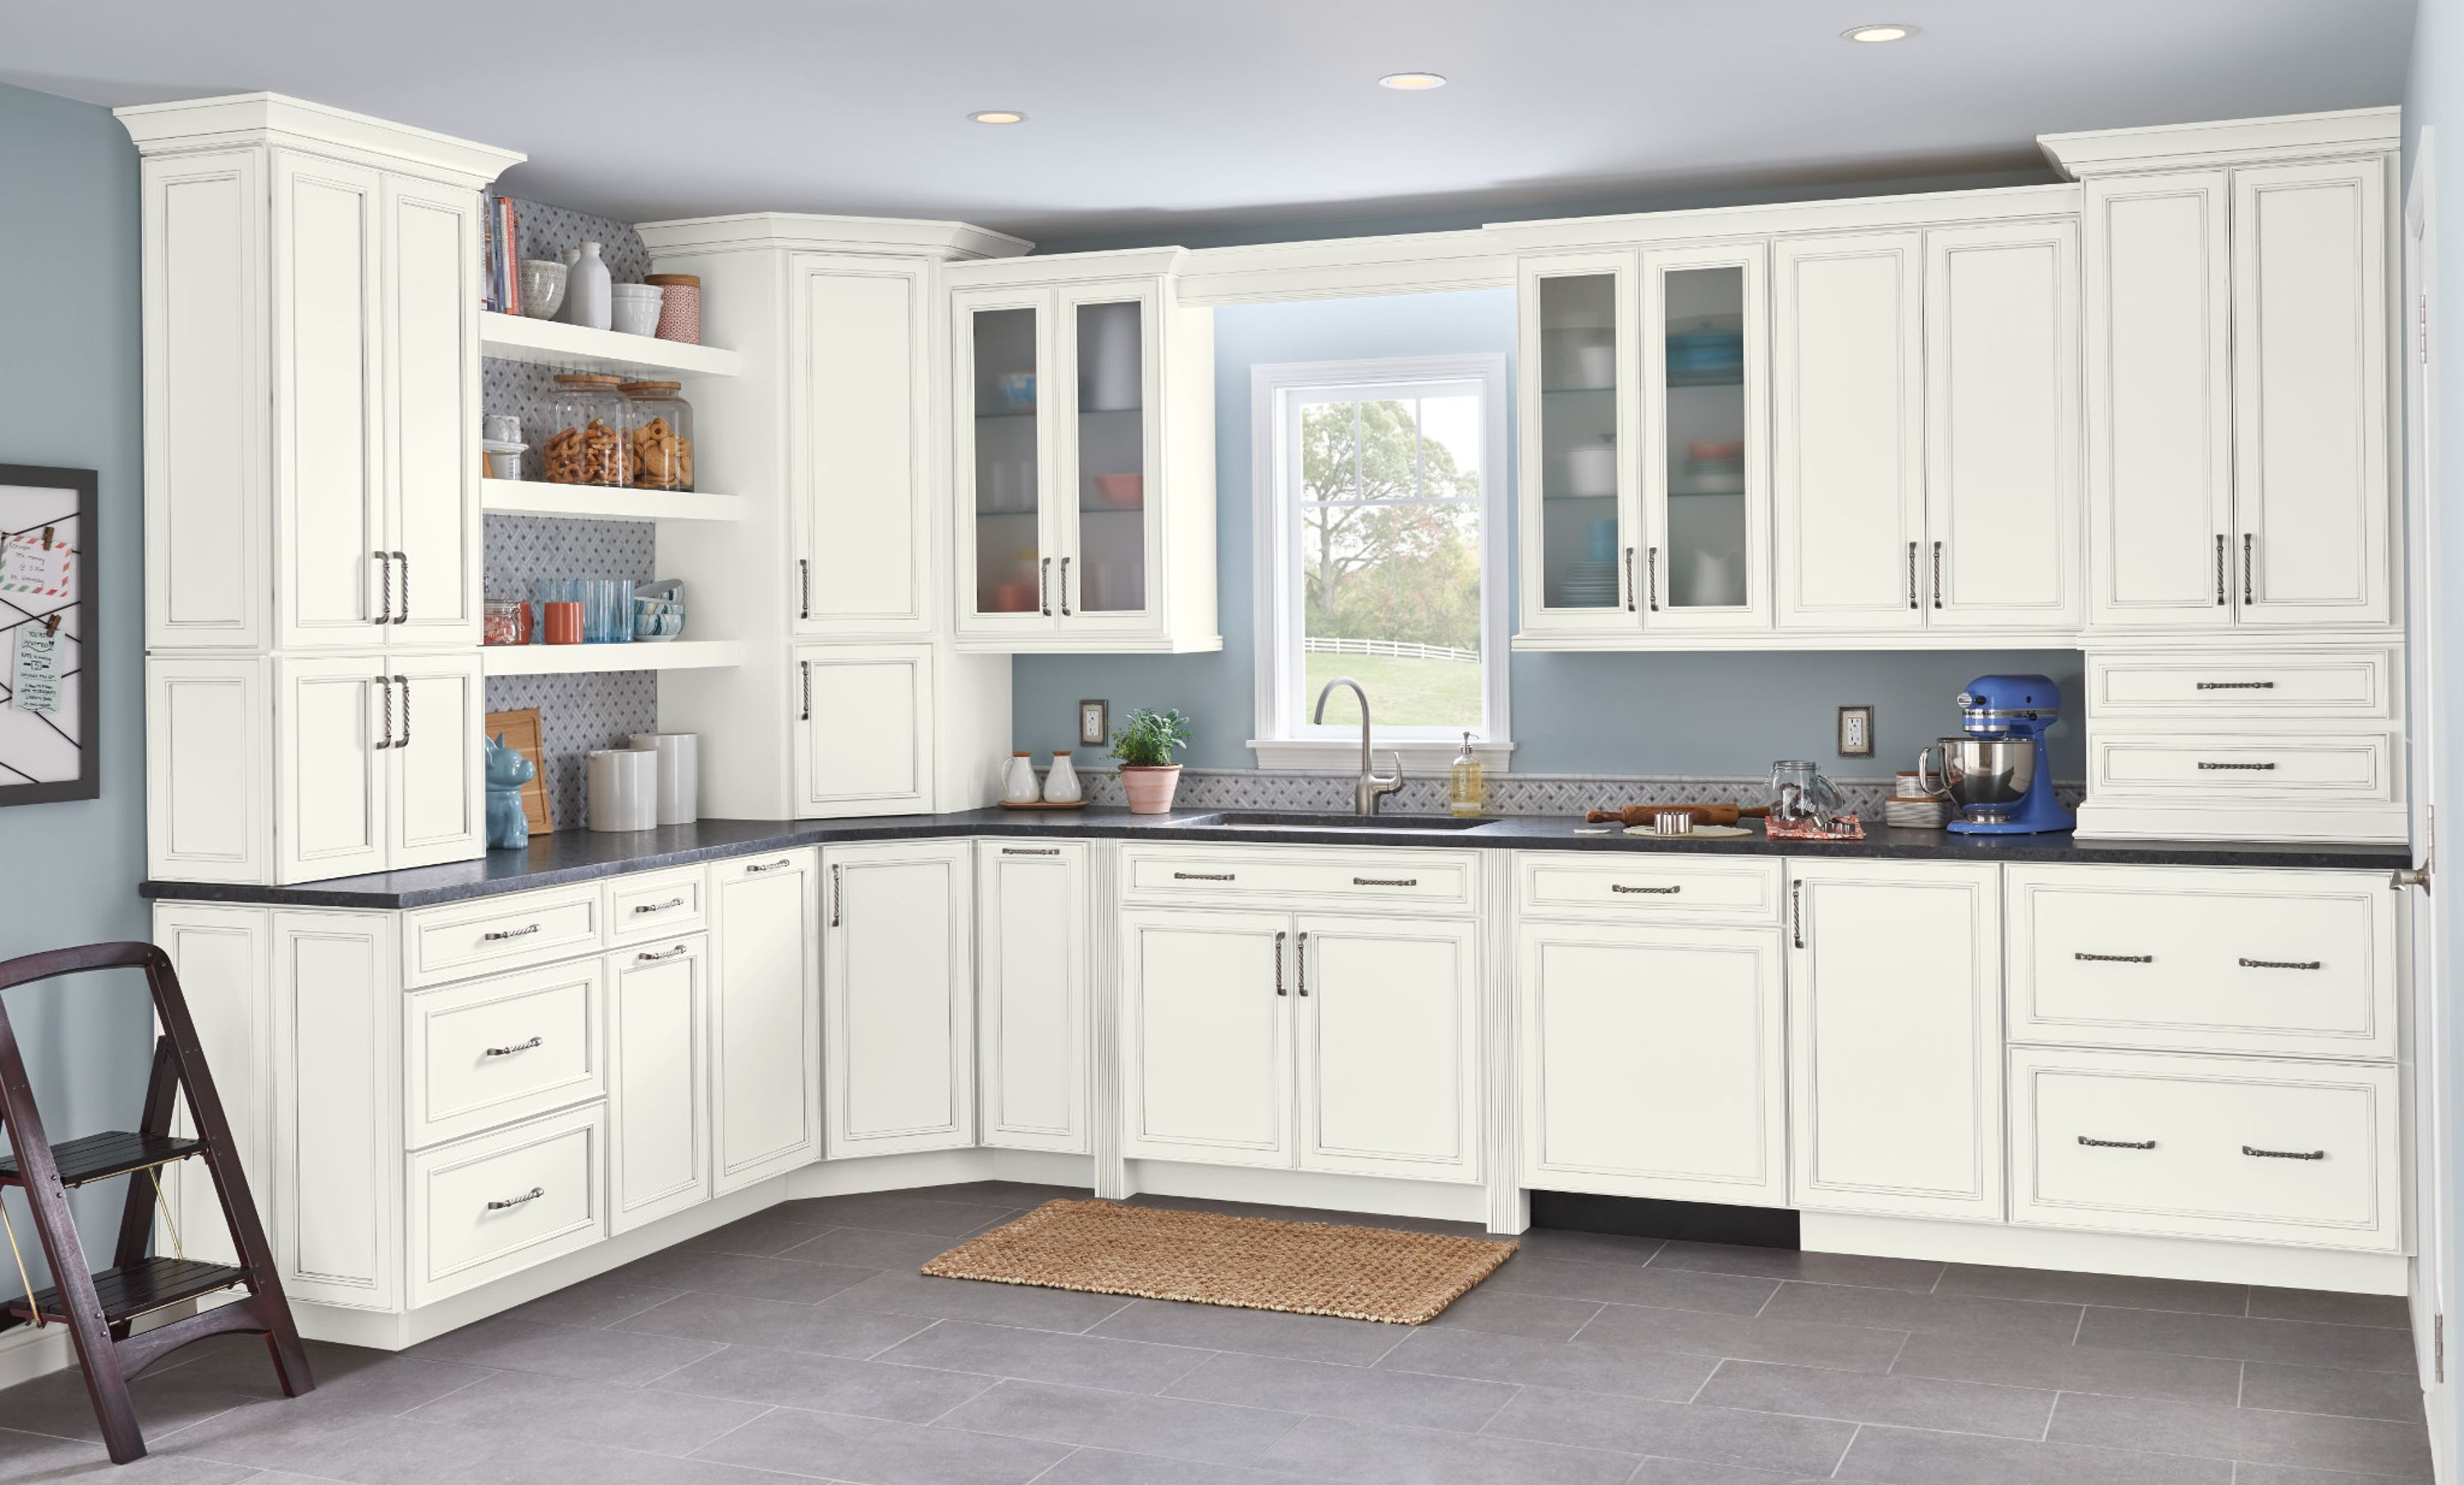 Painted Cabinets | Cherry Cabinets | American Woodmark ...